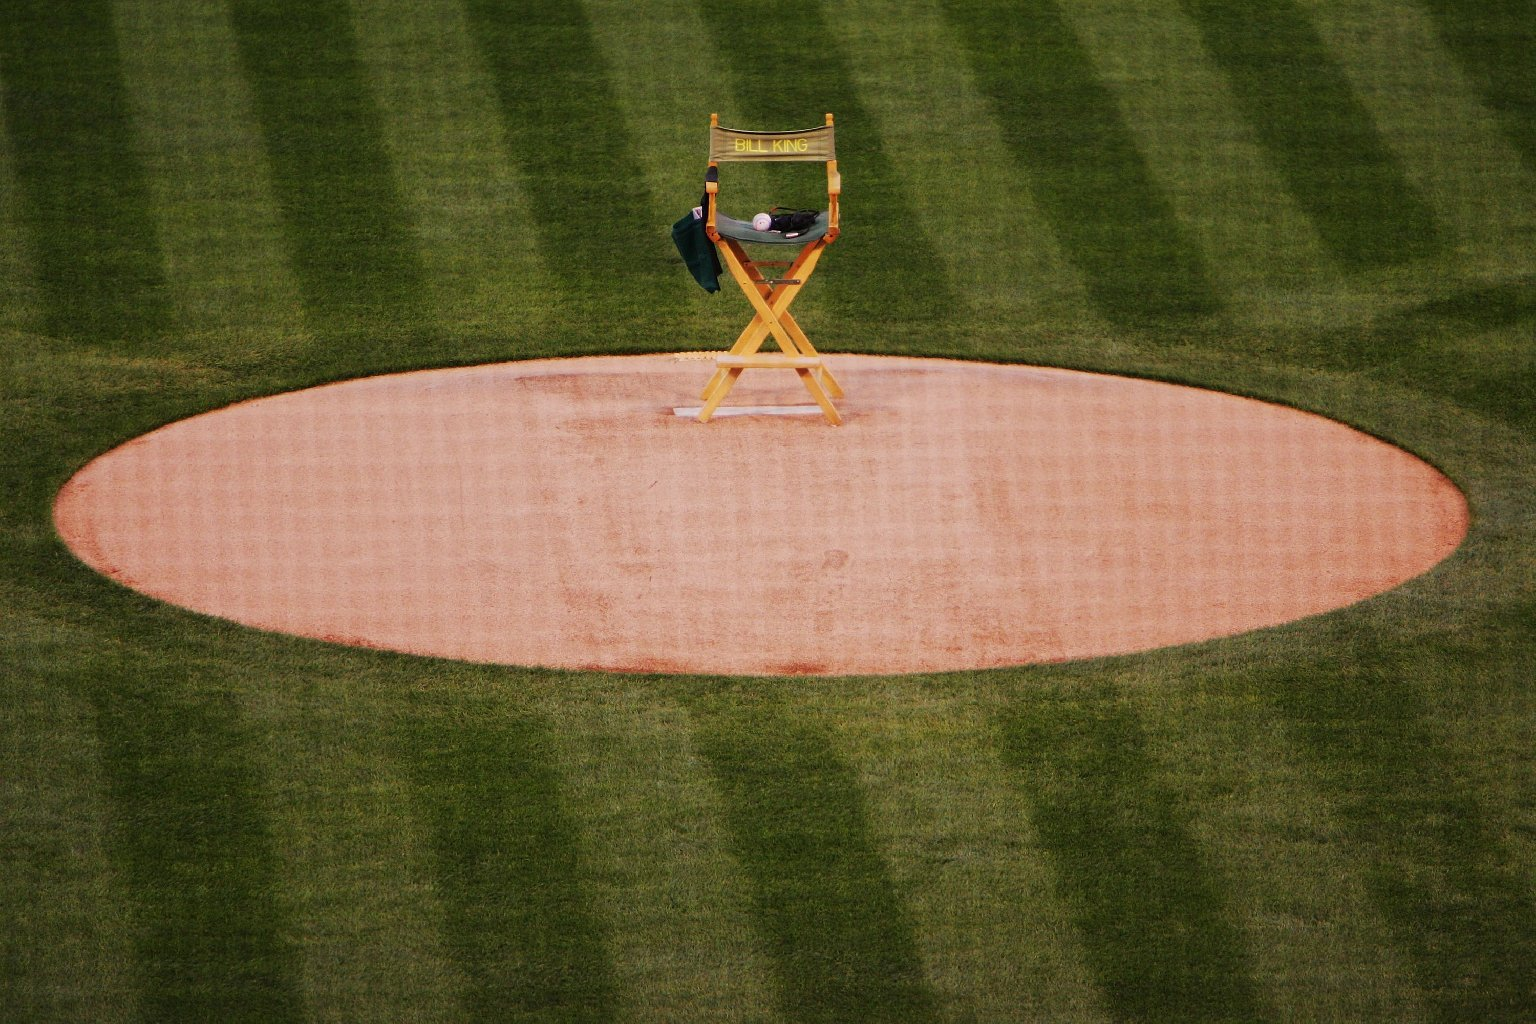 April 2006: Bill King's chair was placed on the Oakland Coliseum pitcher's mound as a tribute to the late broadcaster (Jed Jacobsohn/Getty Images).